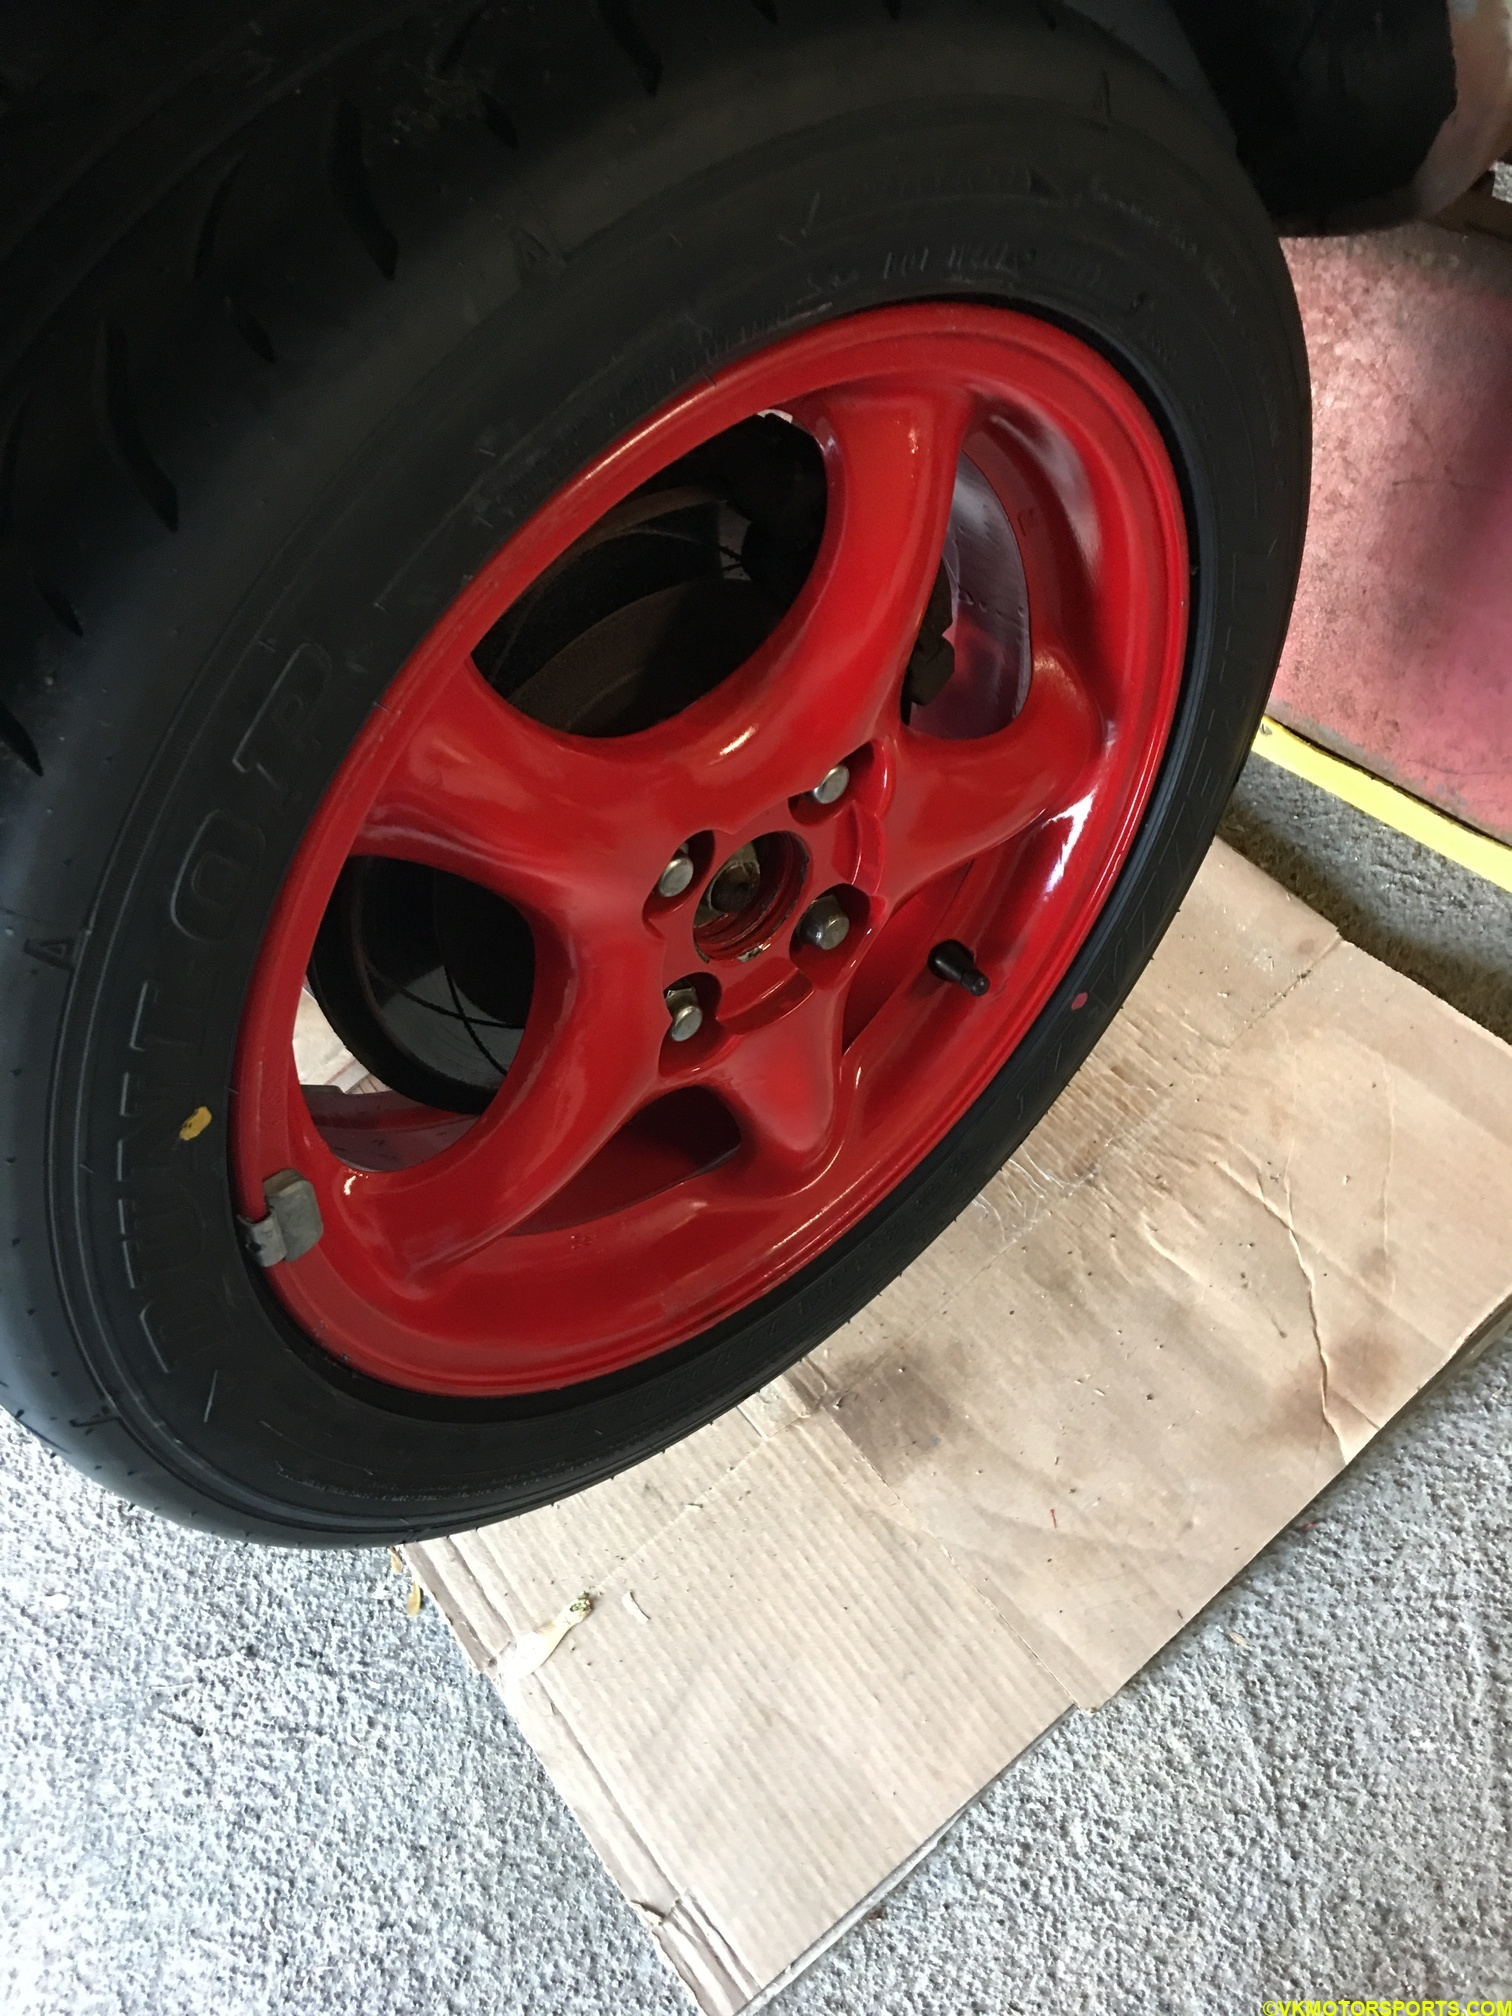 Figure 10. Install replacement wheel and lug nuts